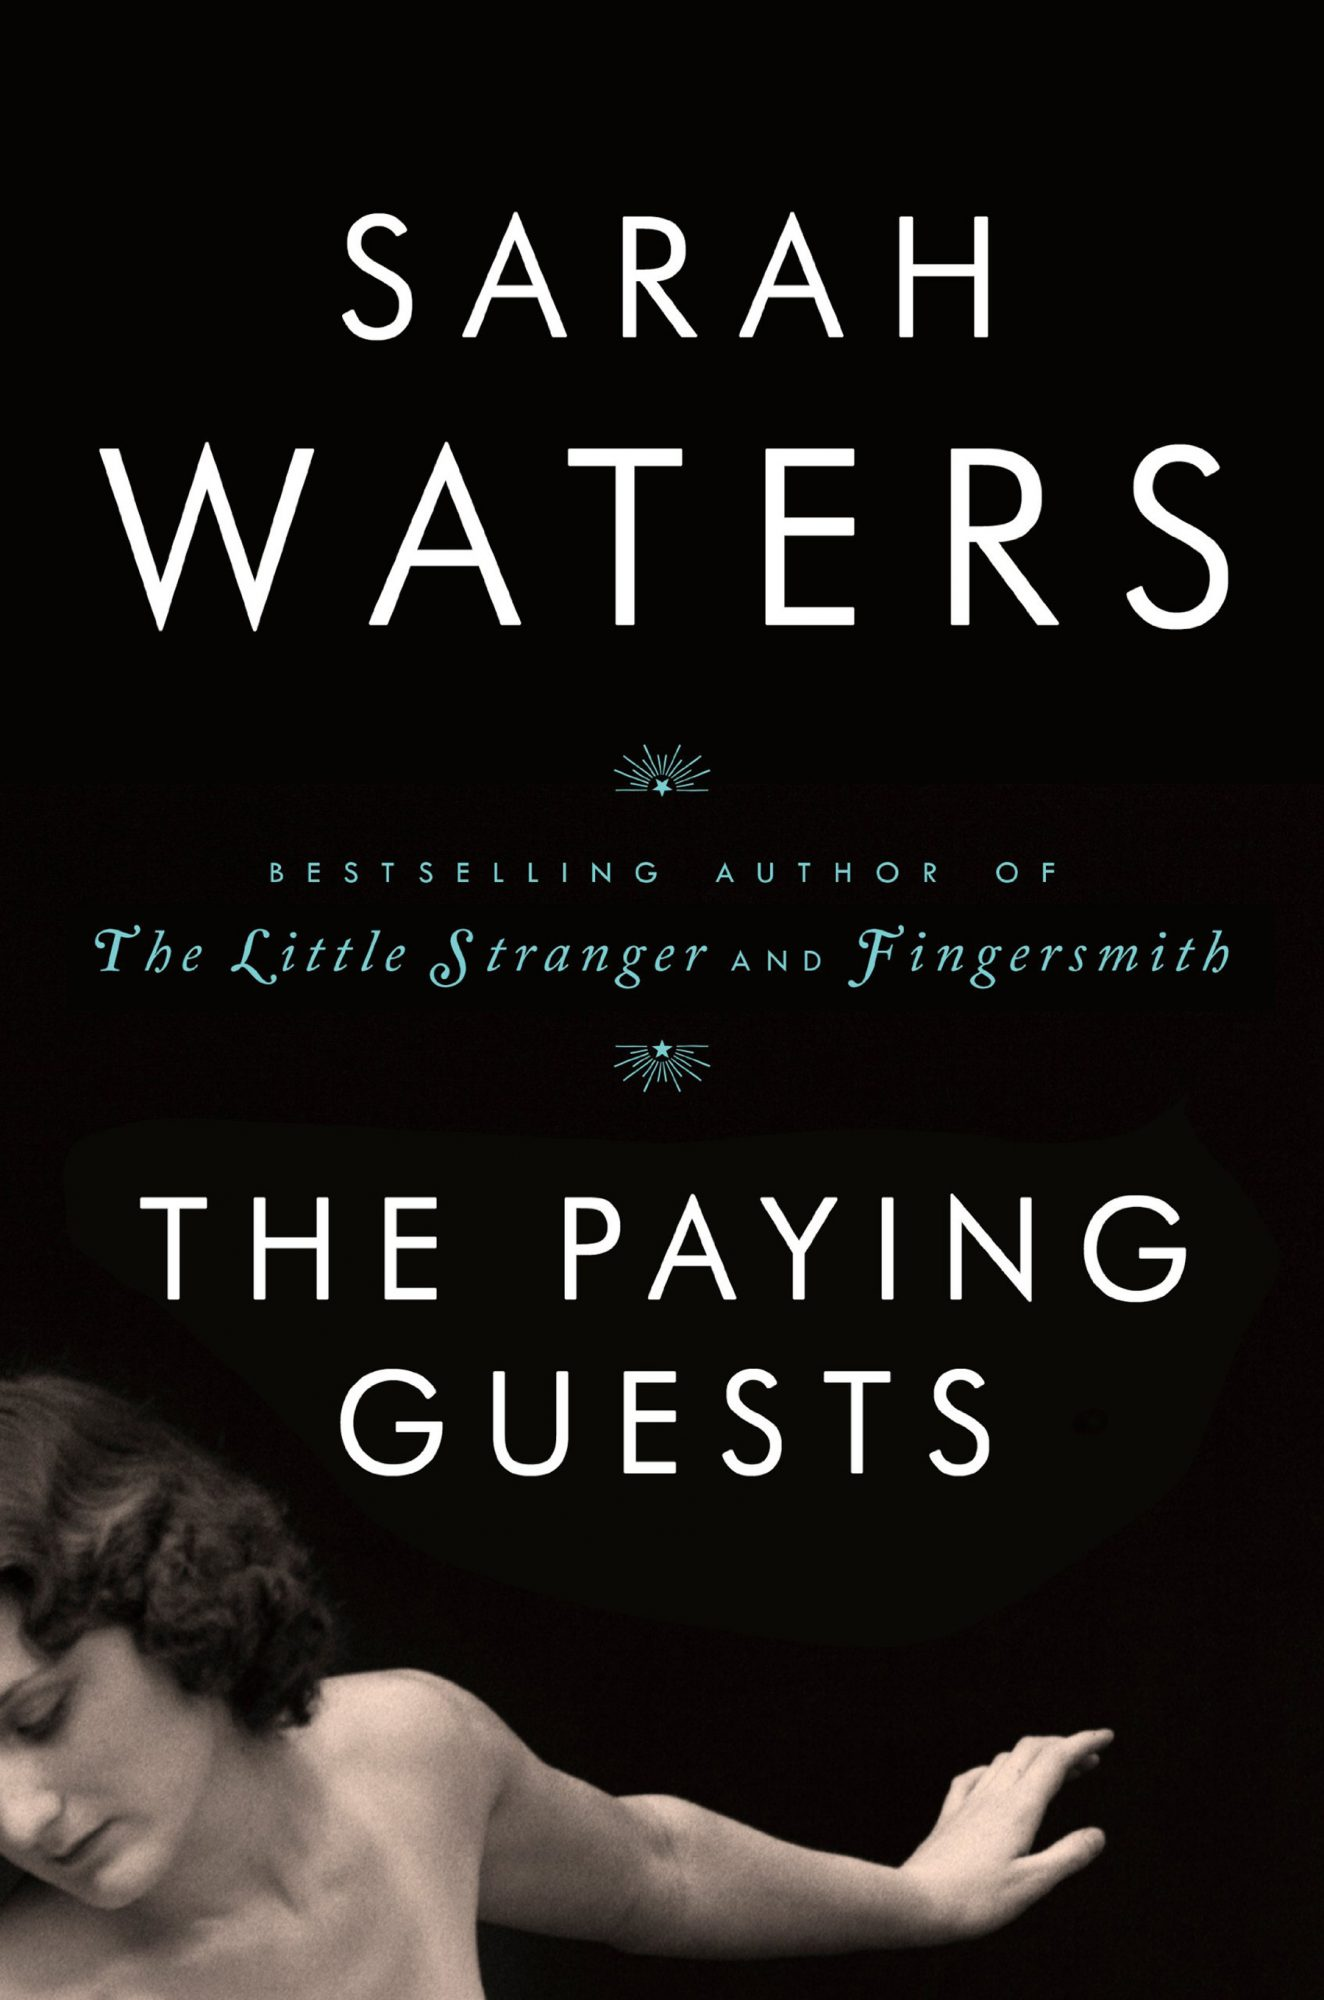 Sarah Waters, The Paying Guests